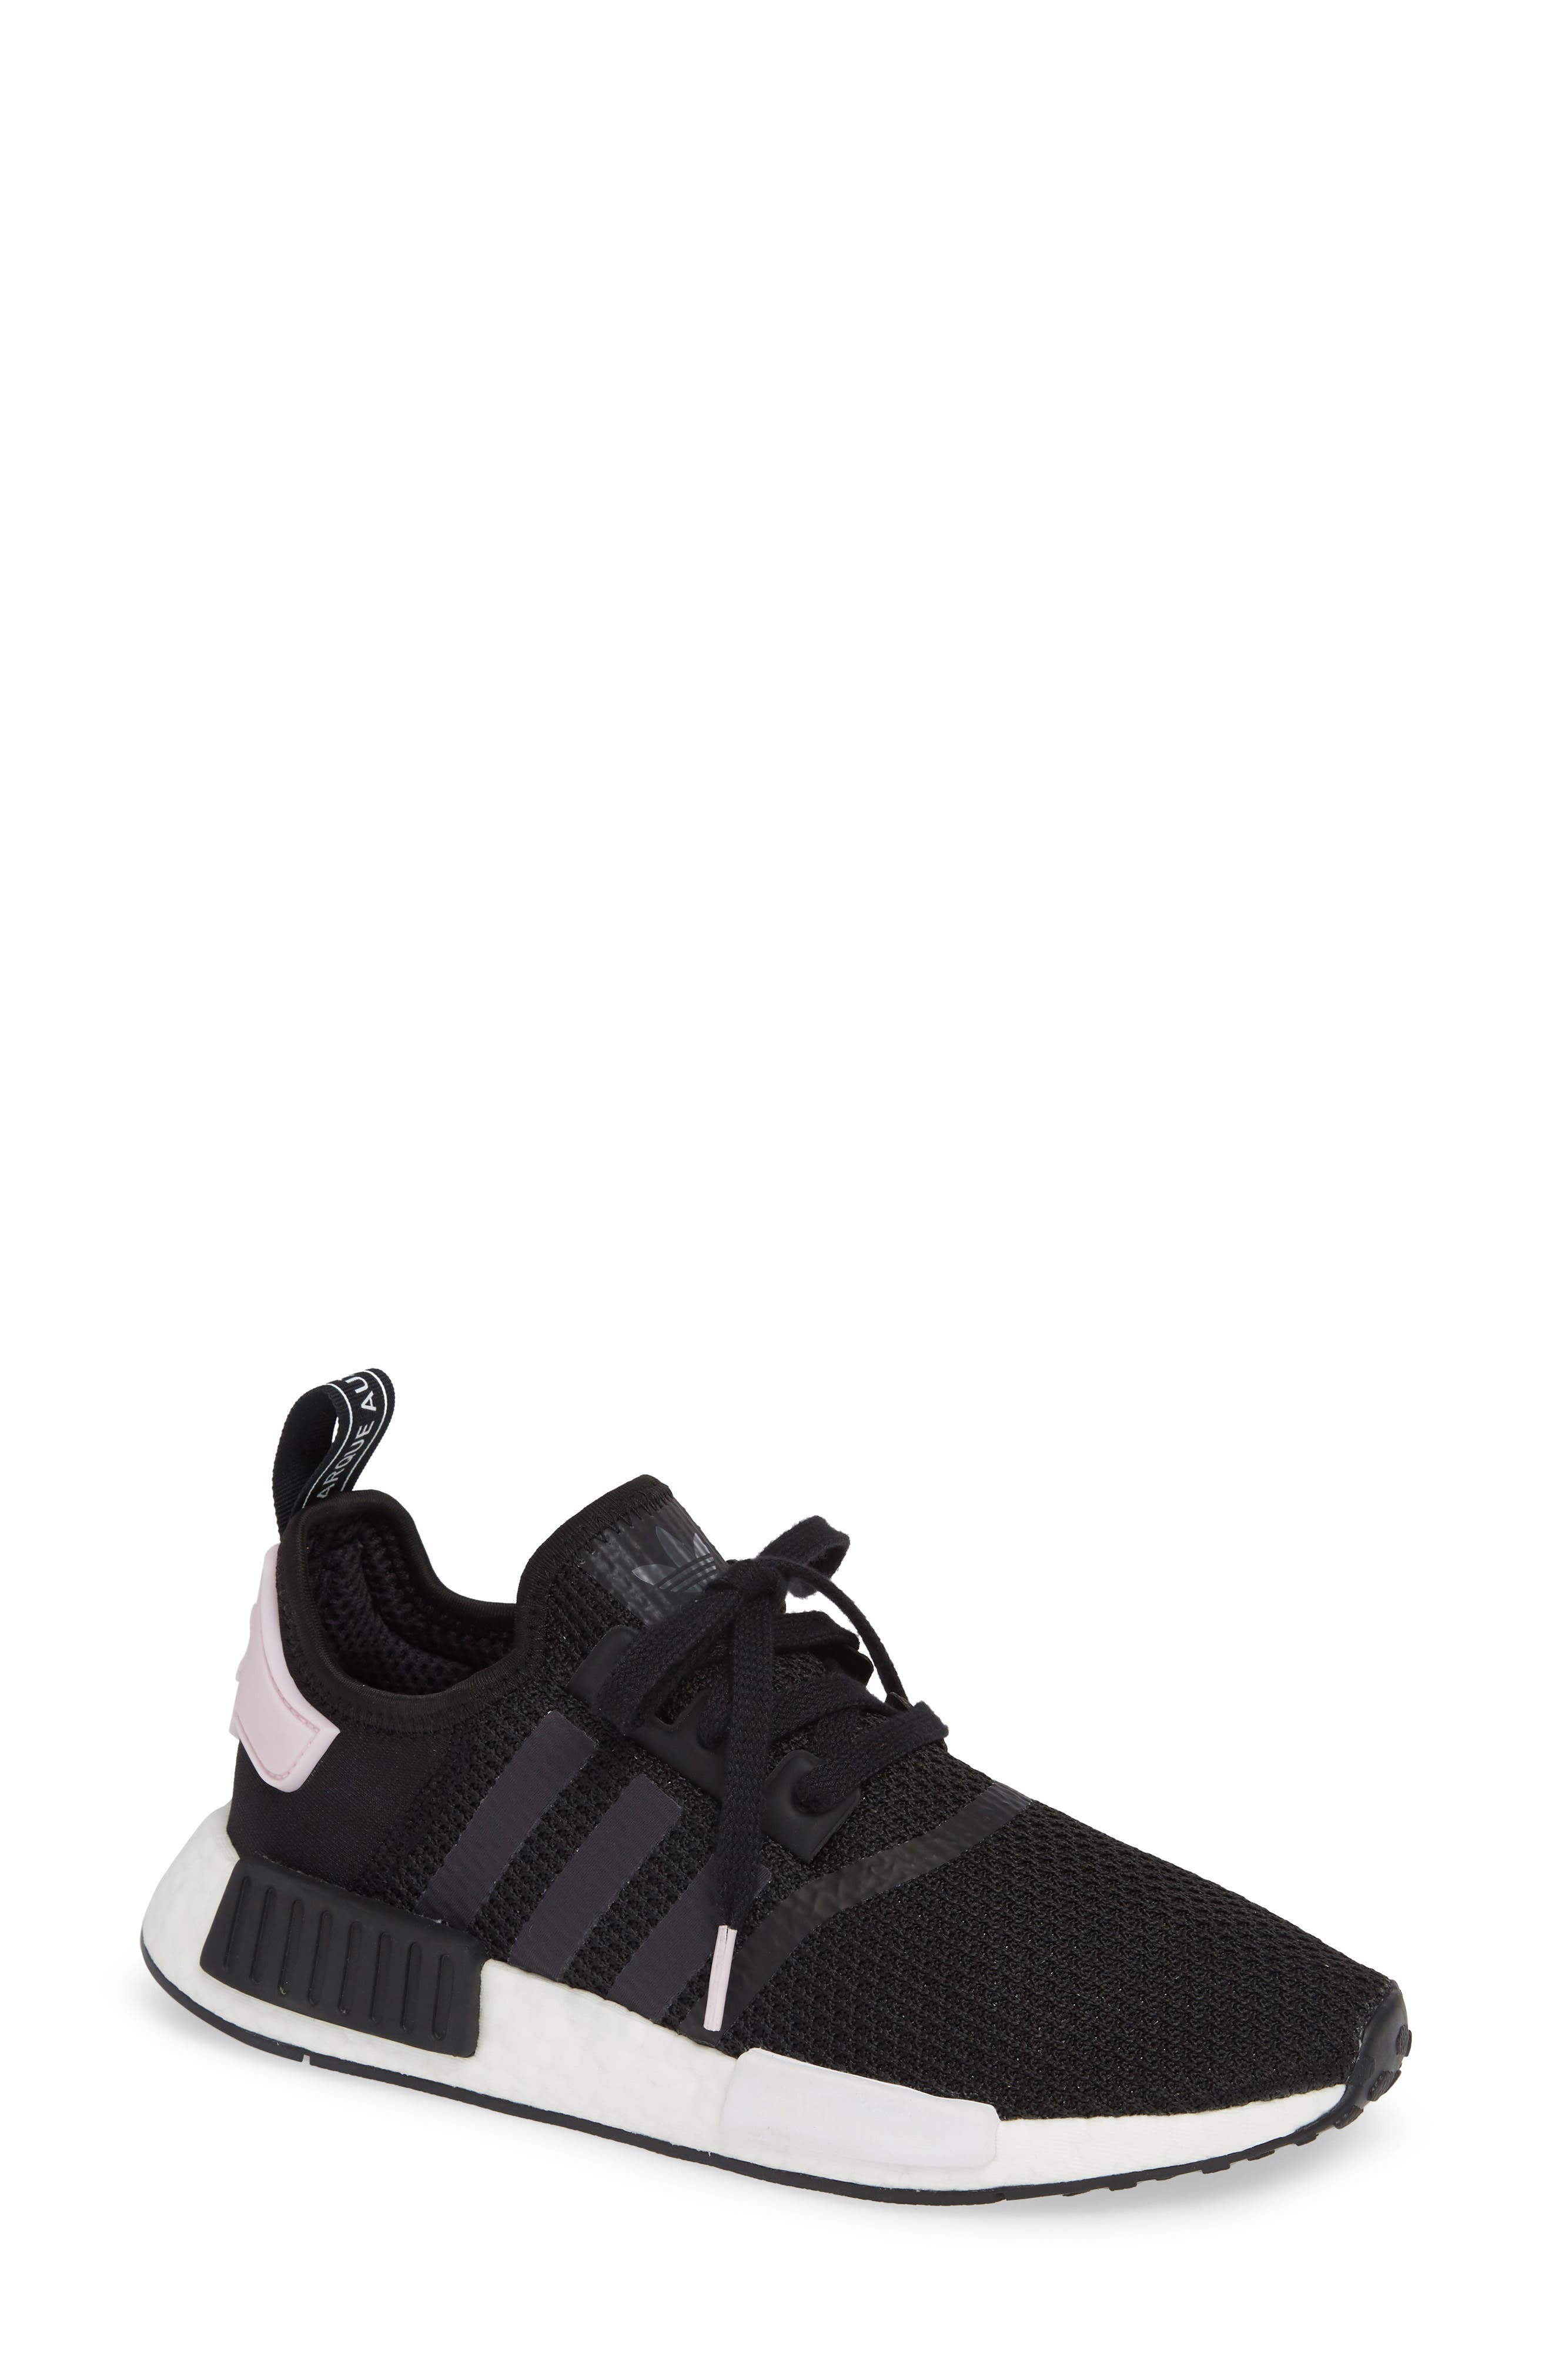 WOMEN'S NMD R1 CASUAL SHOES, BLACK